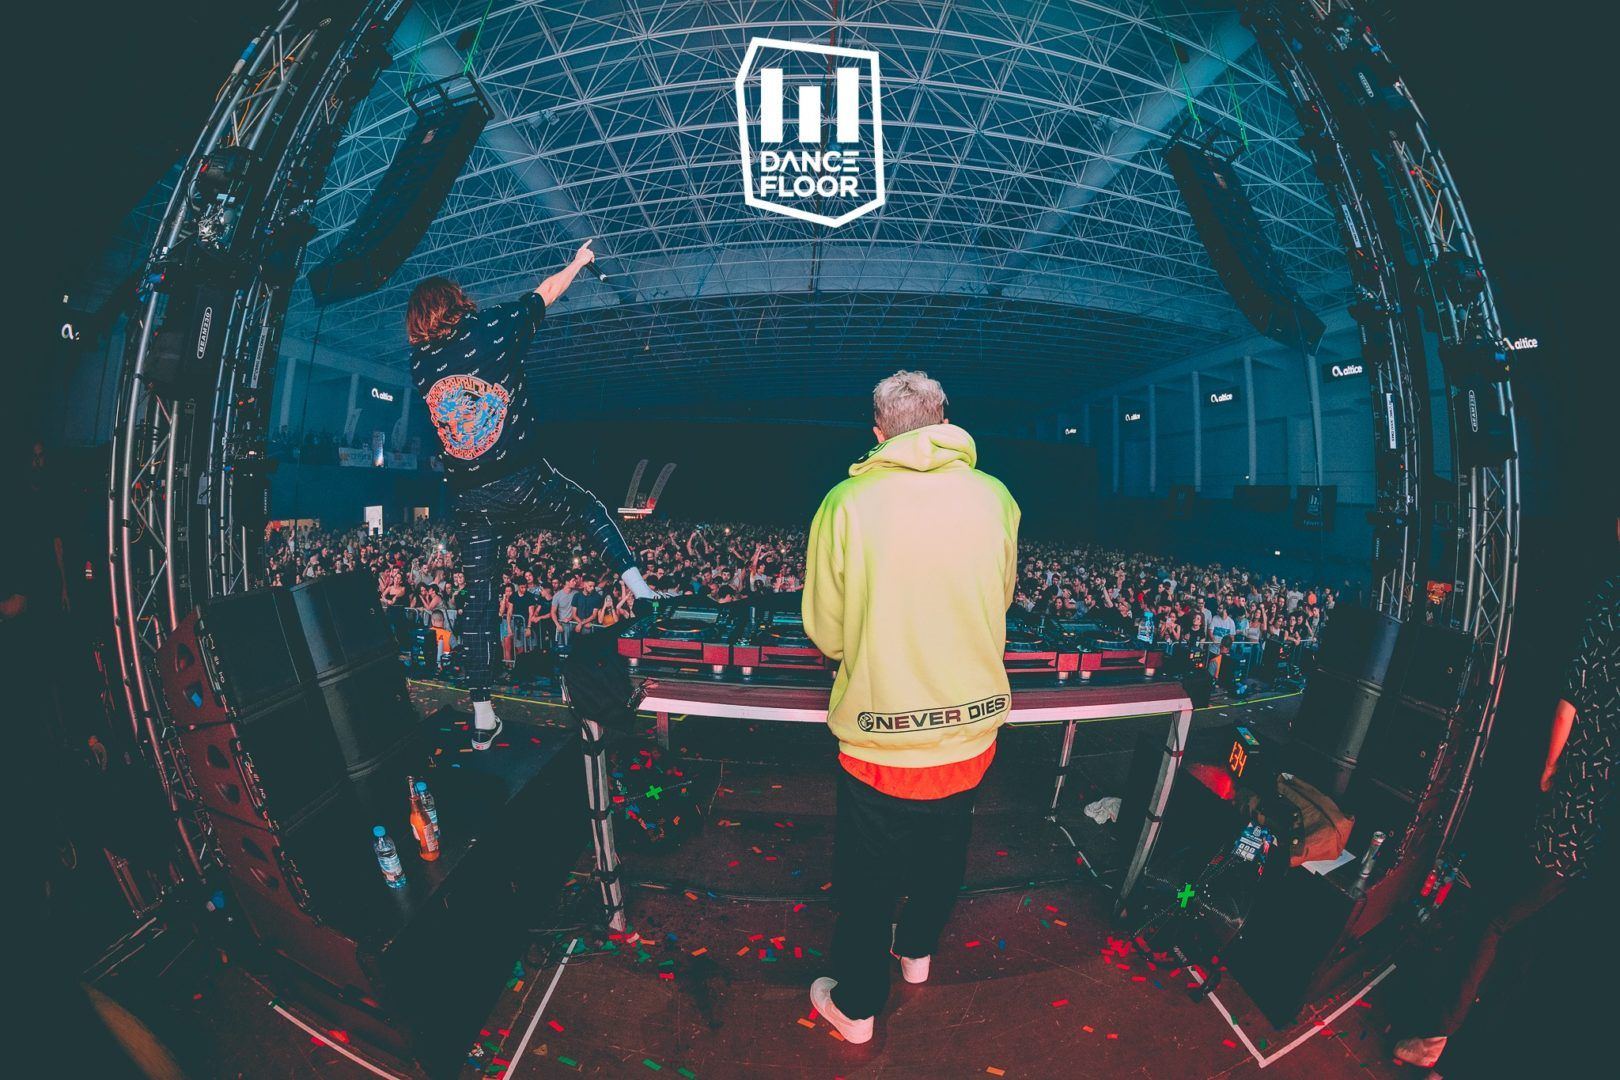 Yellow Claw Dancefloor 2019